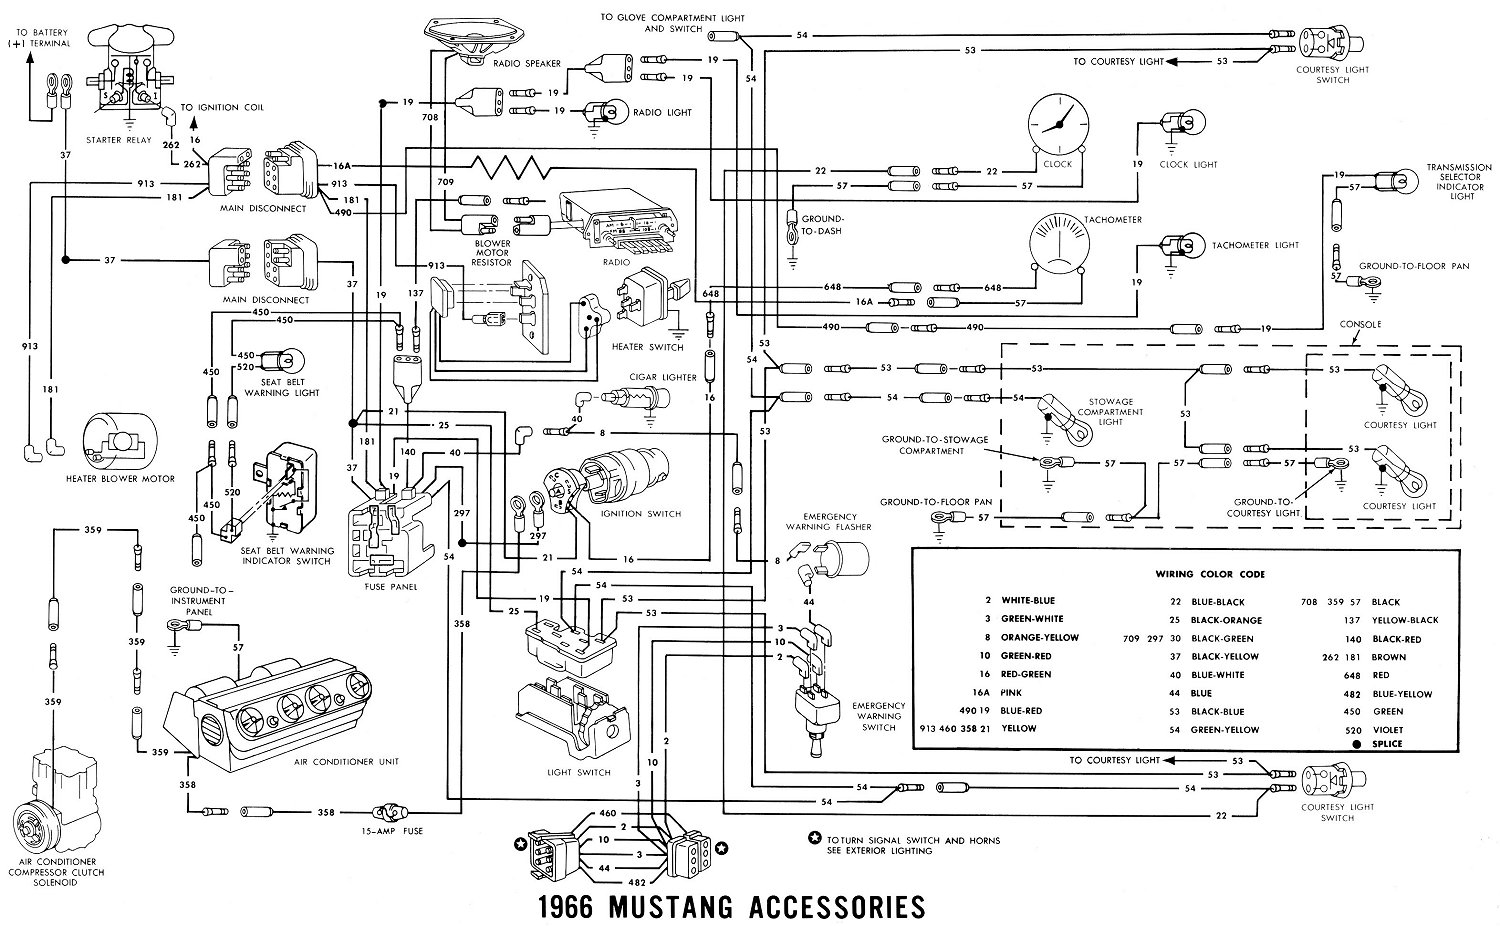 1969 mustang wiring diagram schematic